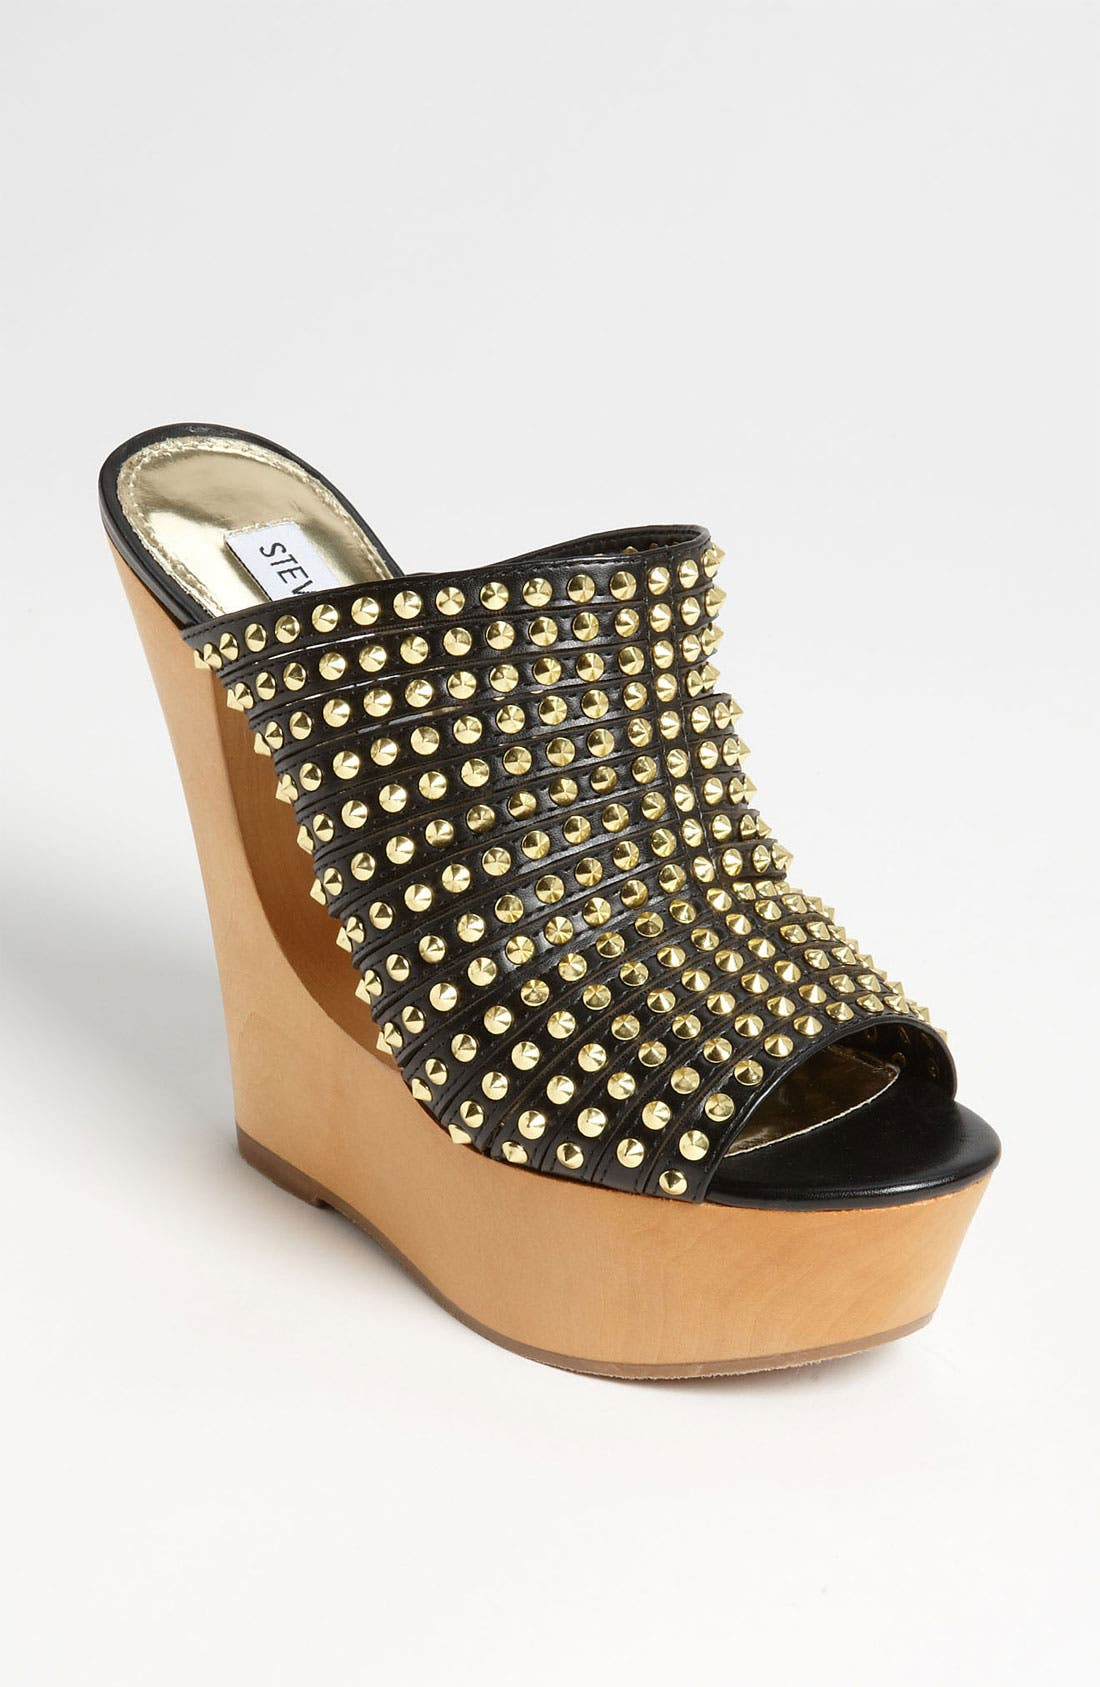 Alternate Image 1 Selected - Steve Madden 'Luccious' Wedge Sandal